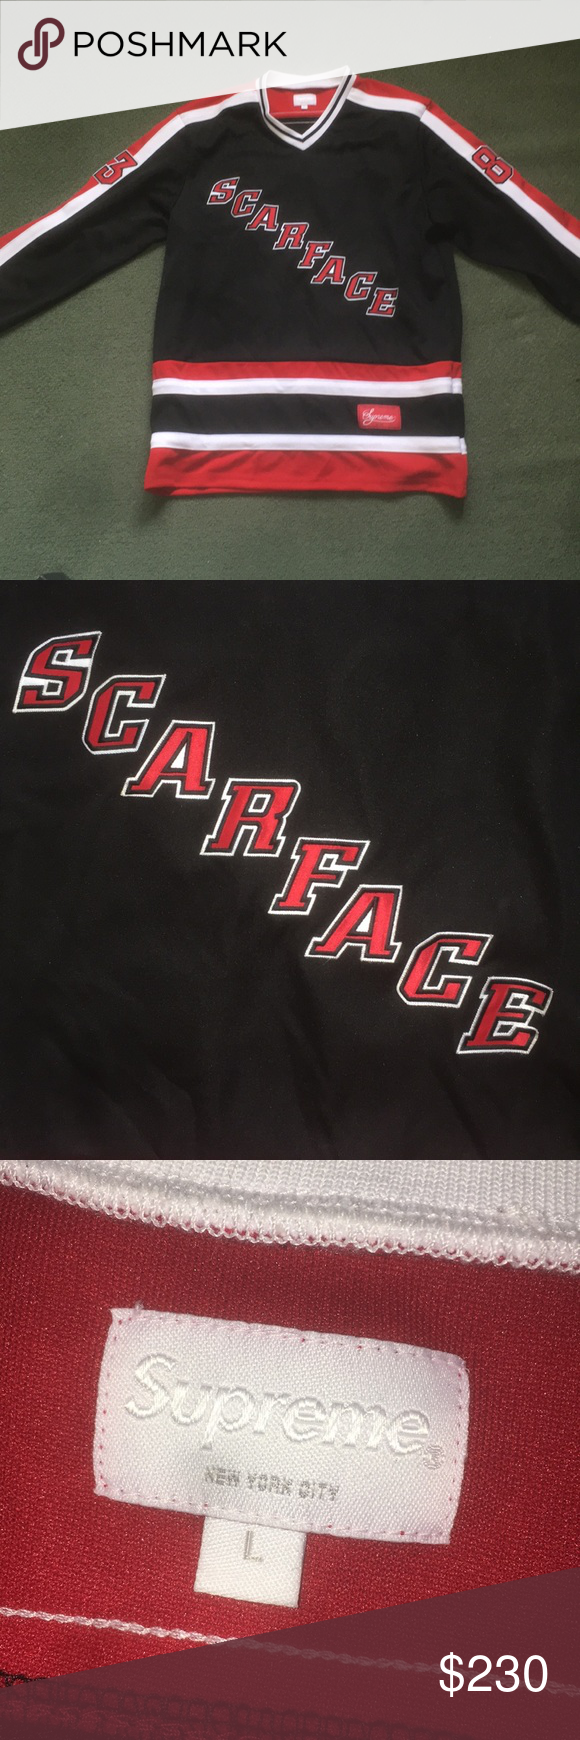 Supreme Scarface Hockey Jersey Hockey Jersey Scarface Sneaker Collection [ 1740 x 580 Pixel ]